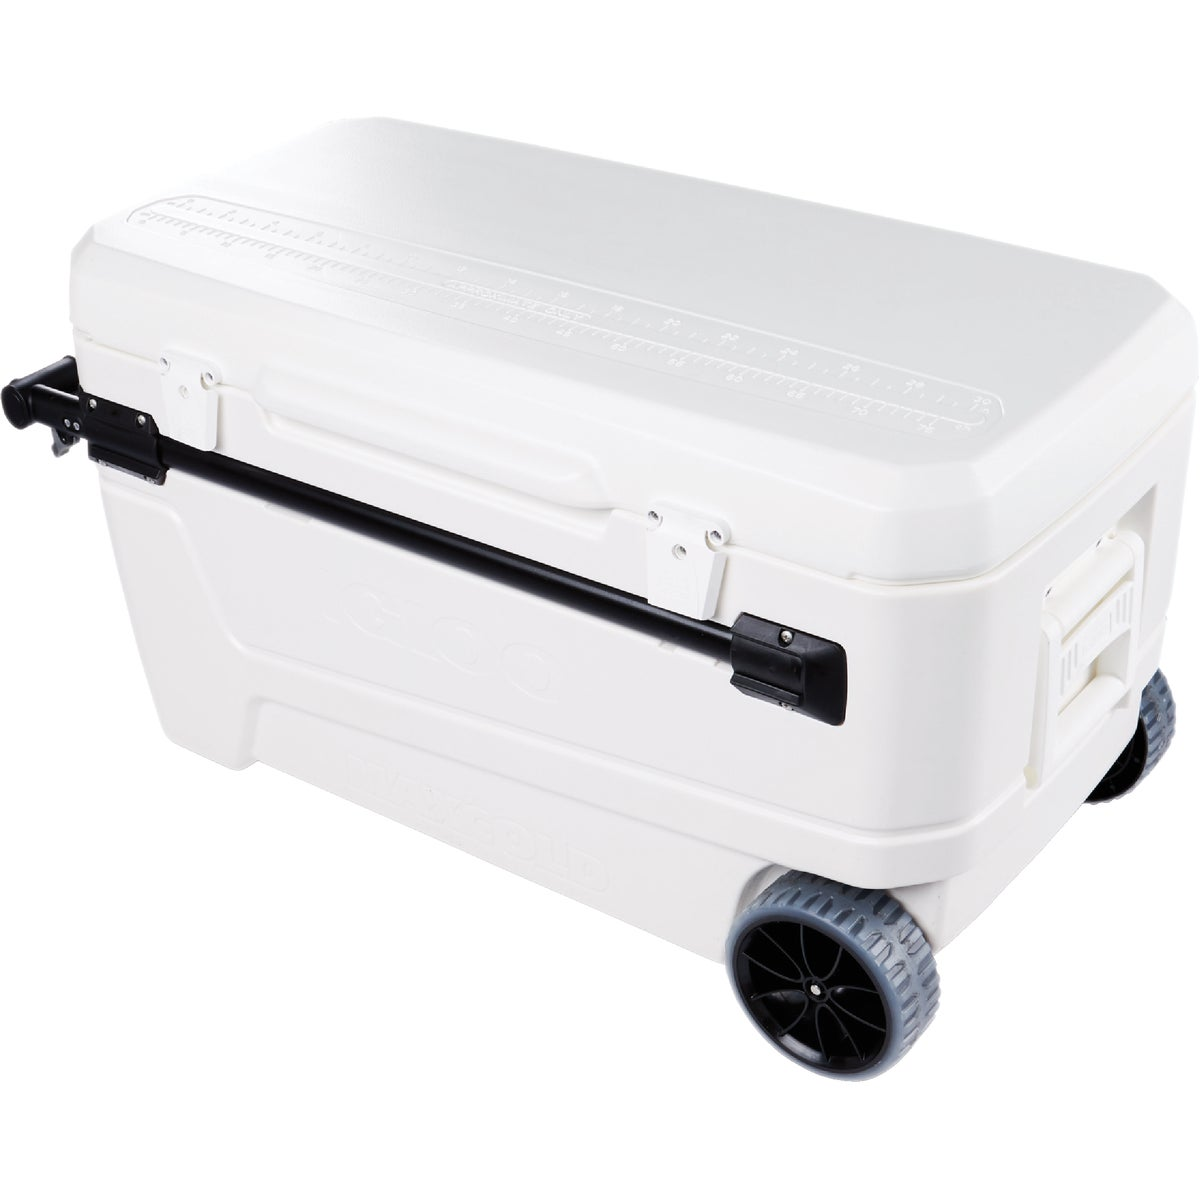 SPORTSMAN 110QT GLIDE - 45673 by Igloo Corp